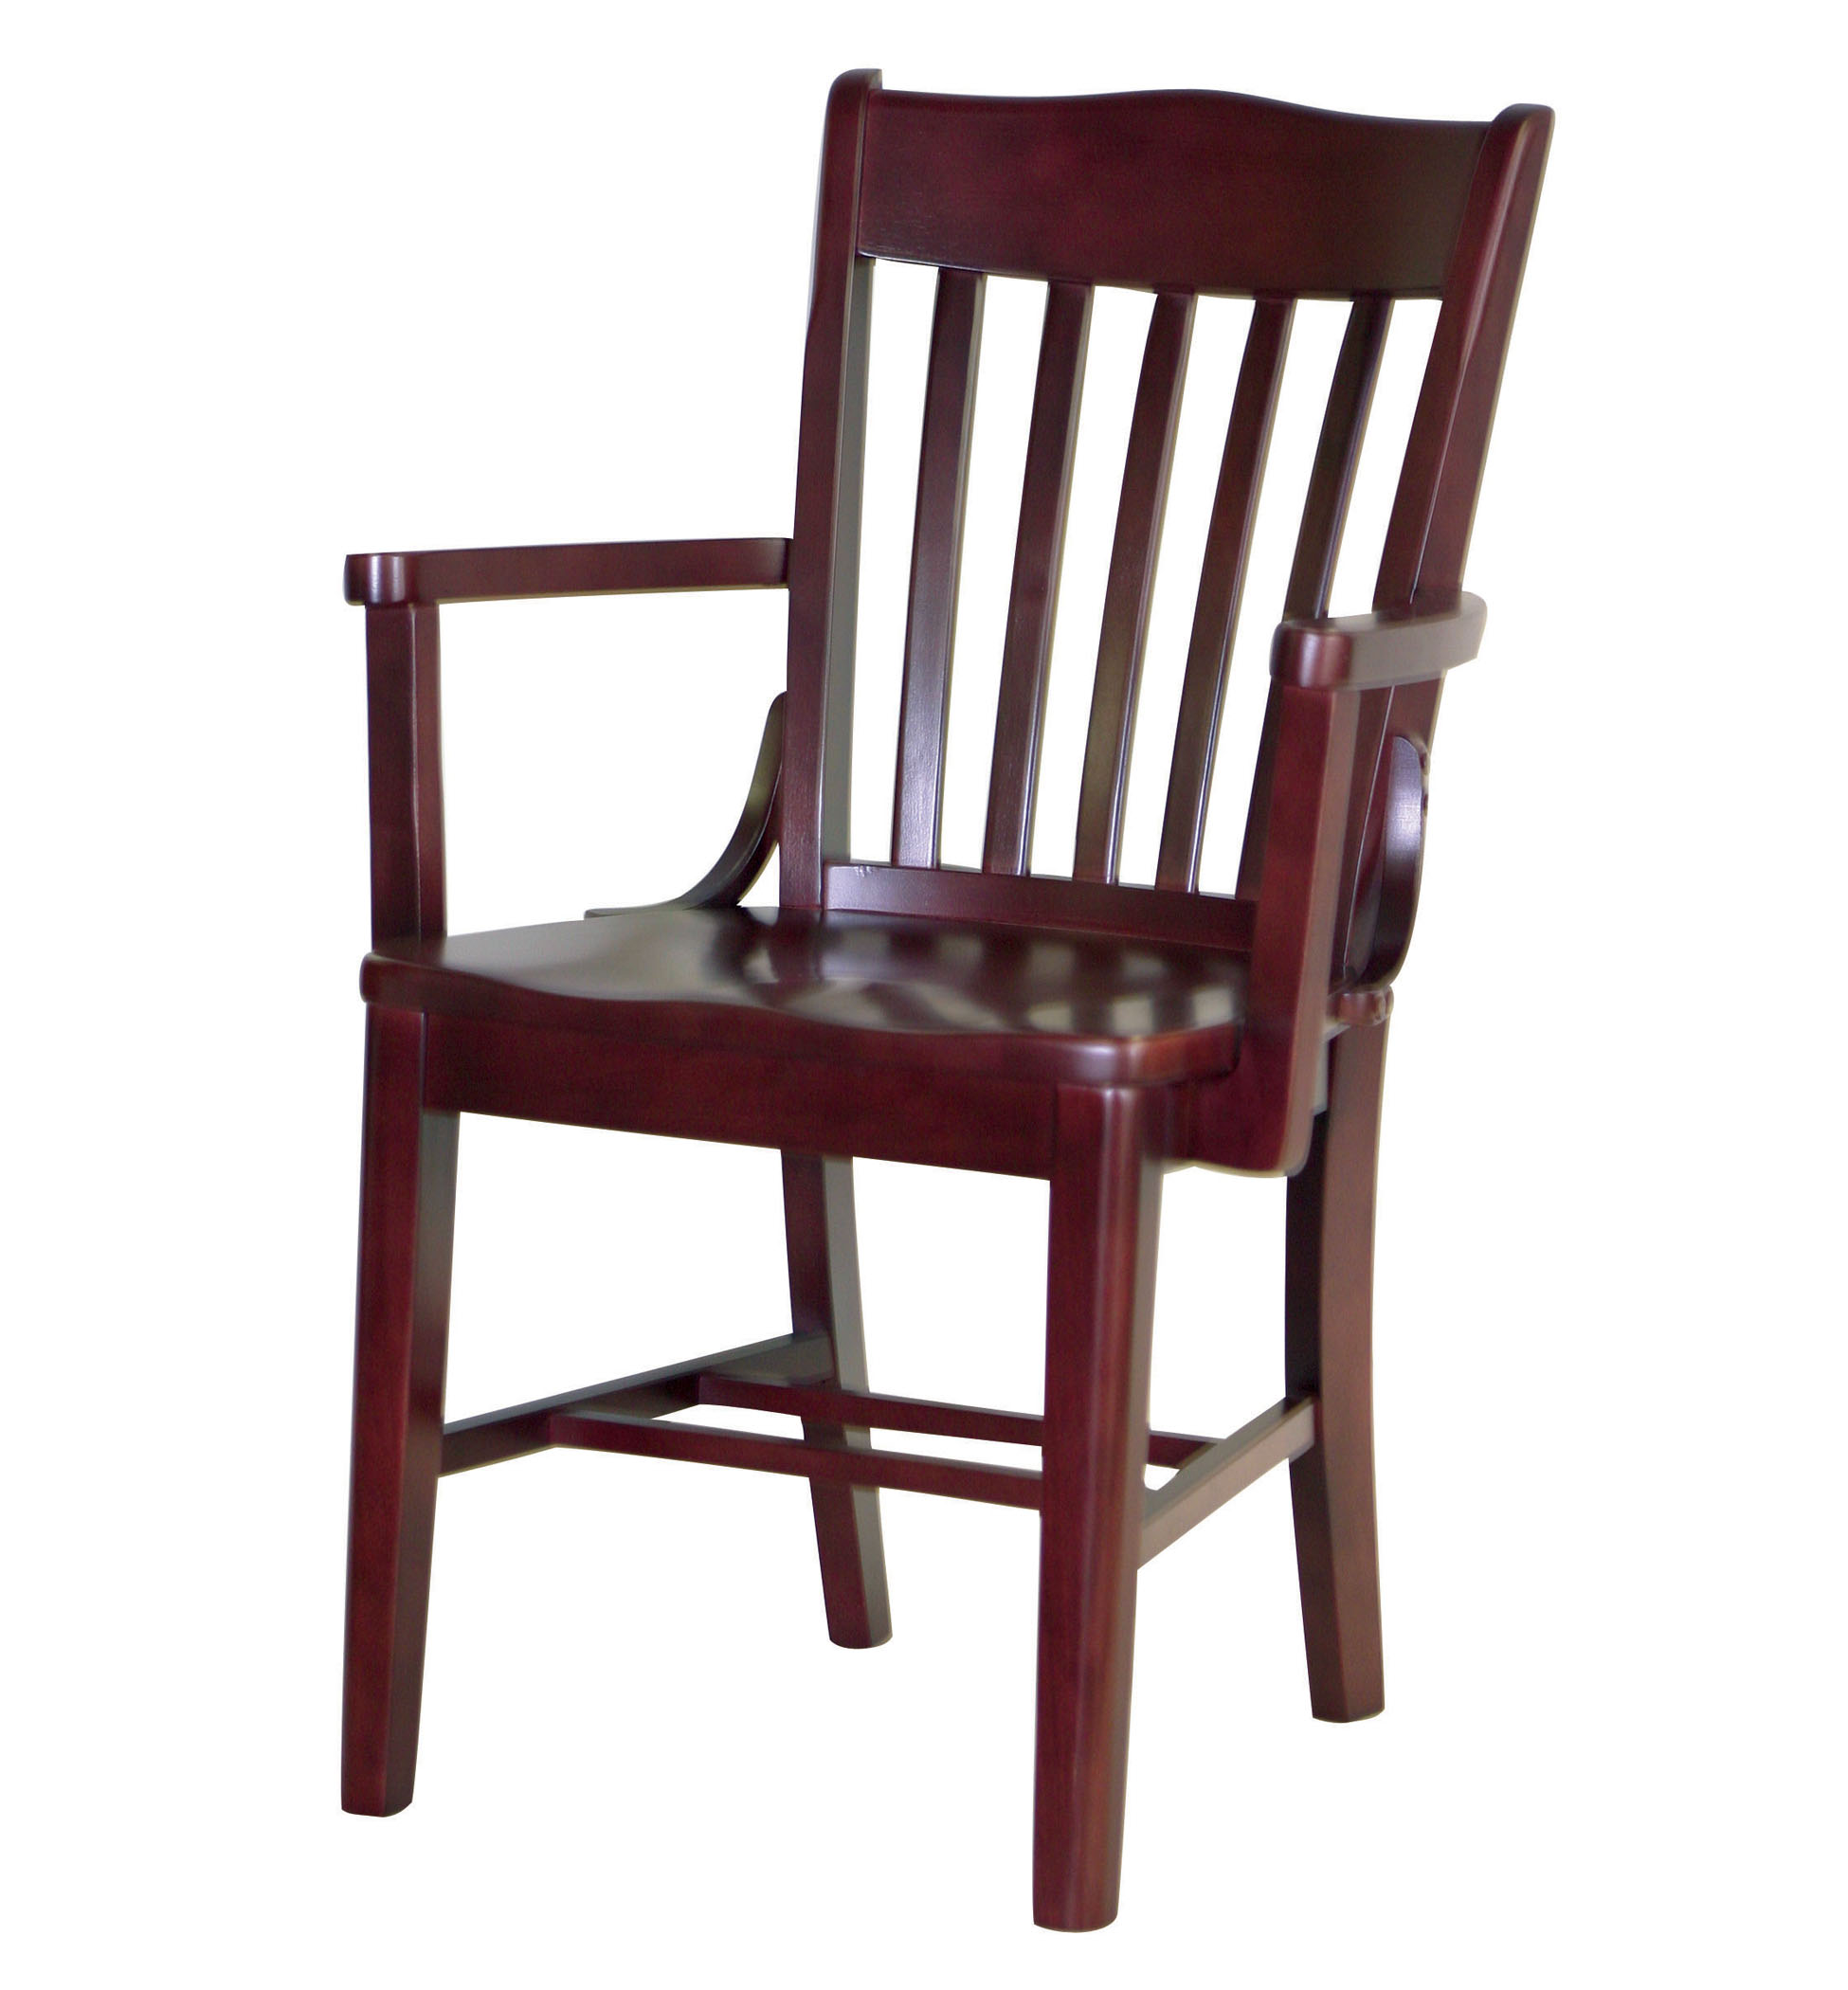 Wooden Arm Chair 7035 1 Wood Arm Chair